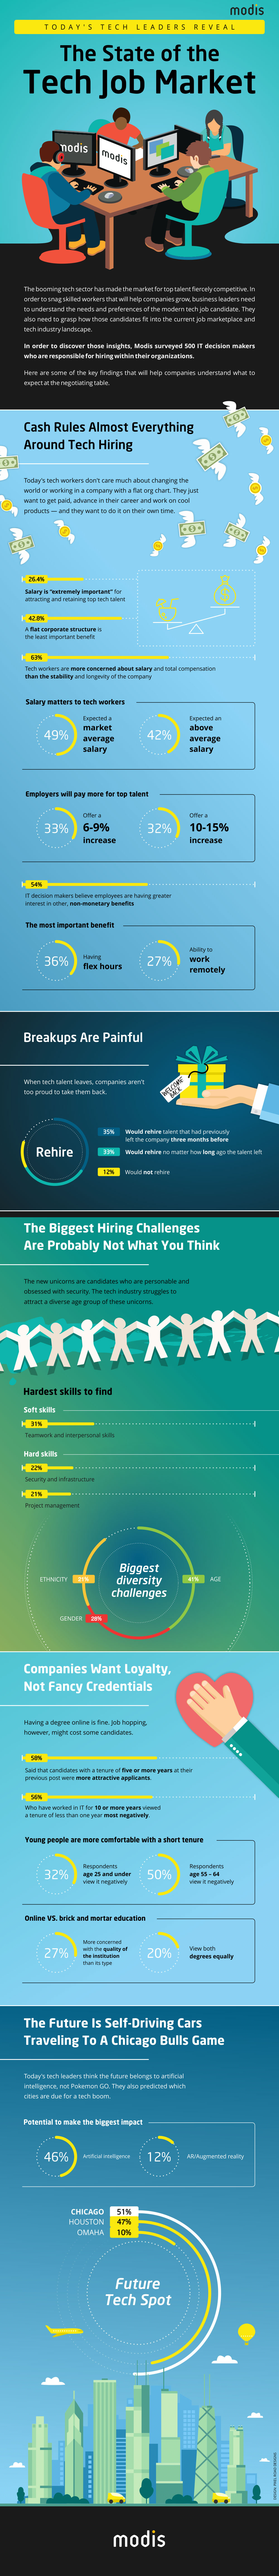 Infographic of tech job trends